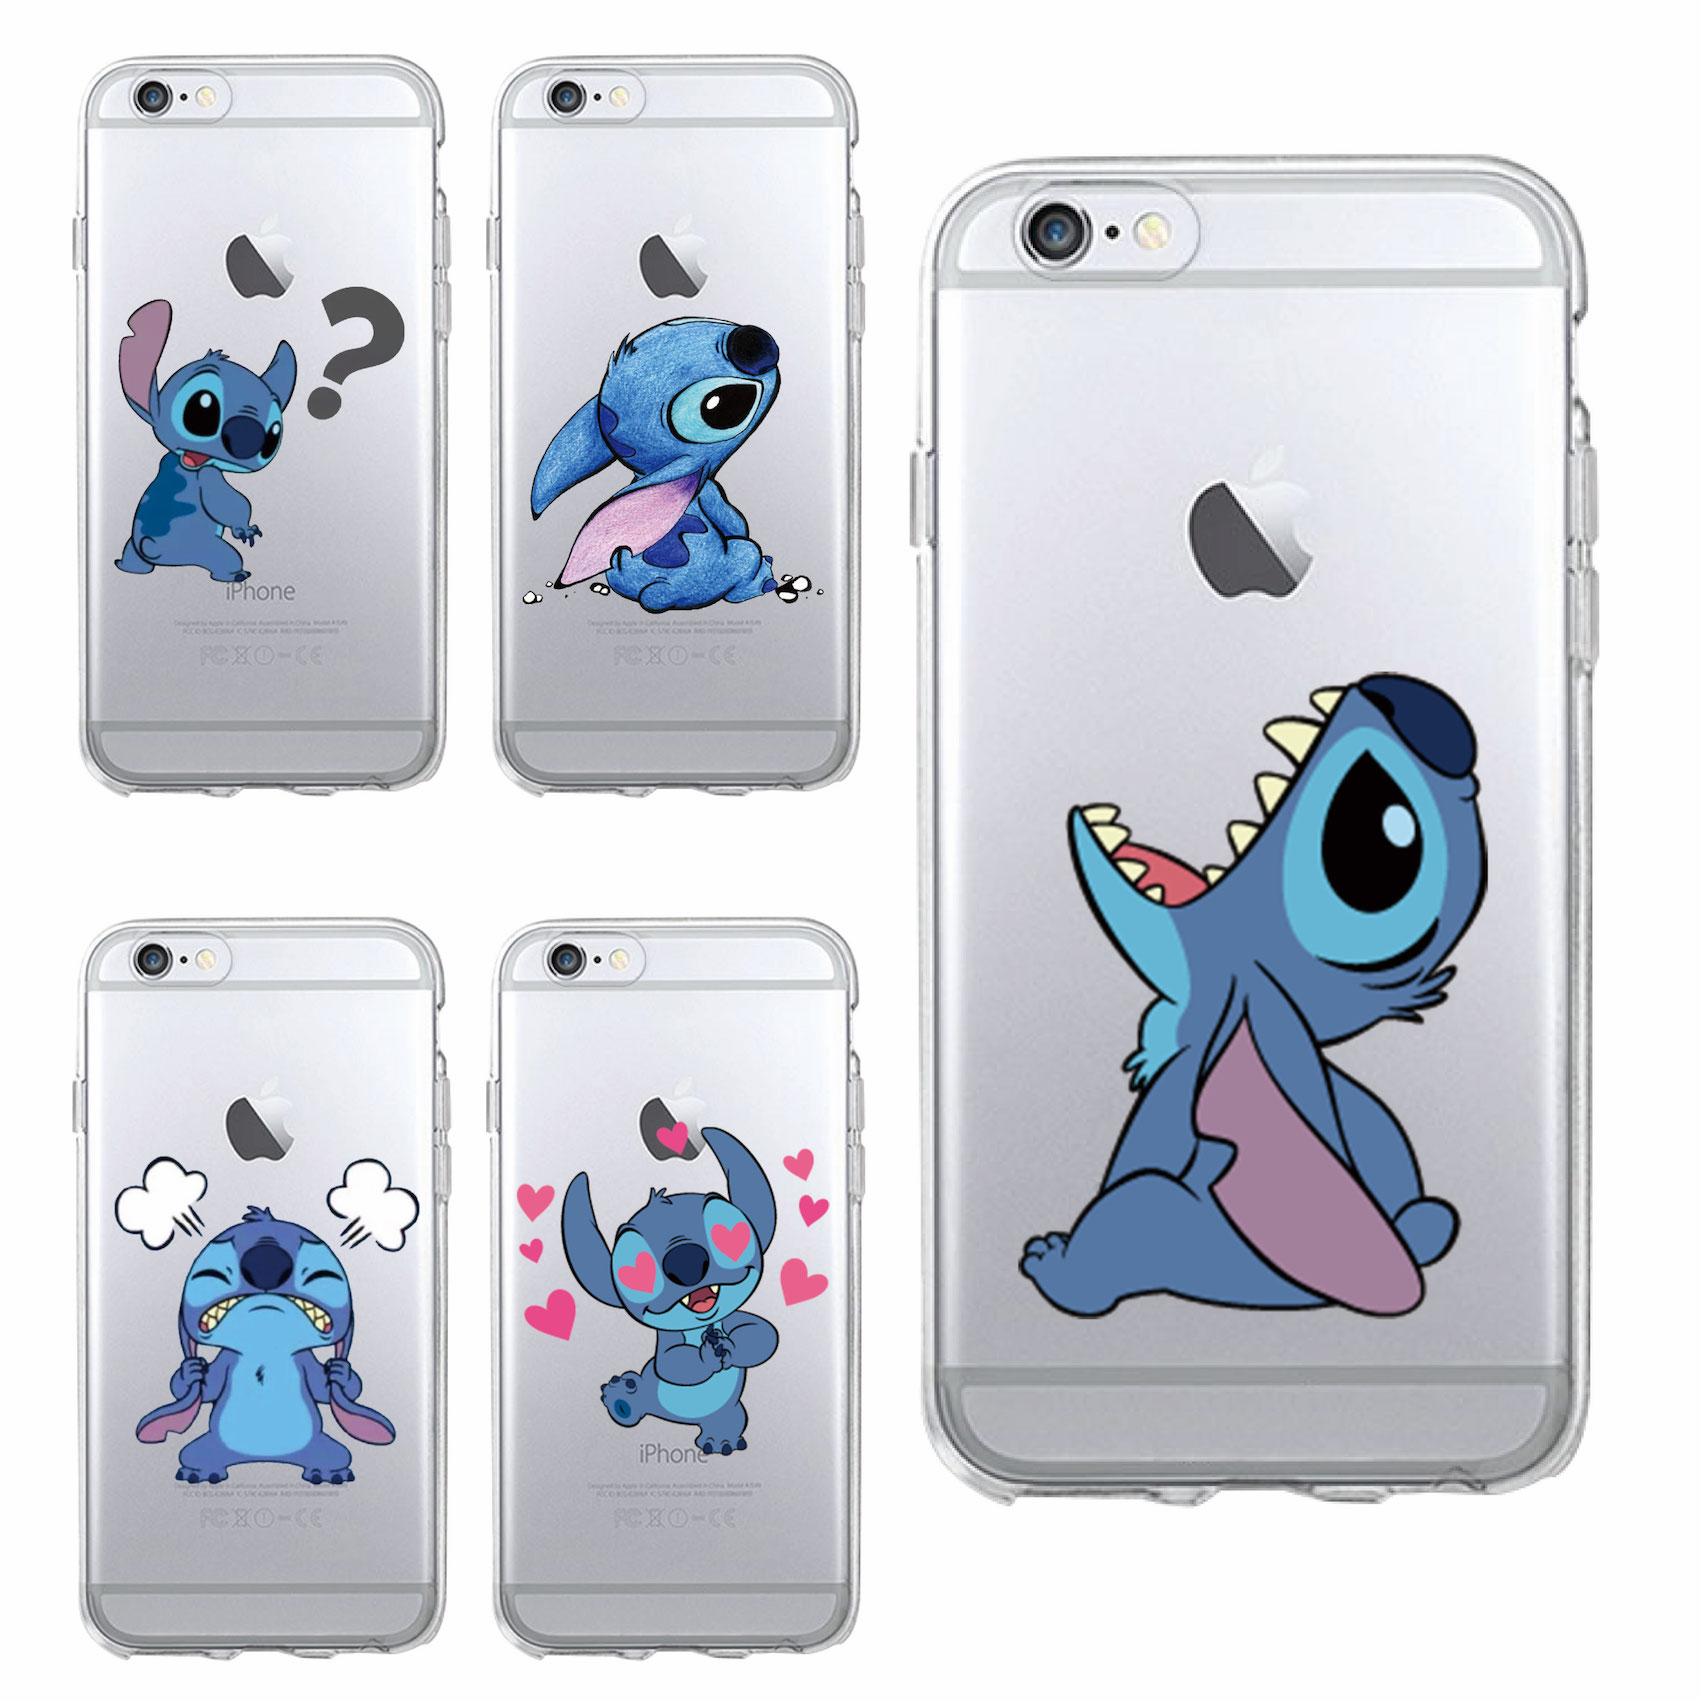 buy funny cute stitch cartoon emoji soft tpu clear phone case fundas coque for iphone 6 6s 6plus. Black Bedroom Furniture Sets. Home Design Ideas